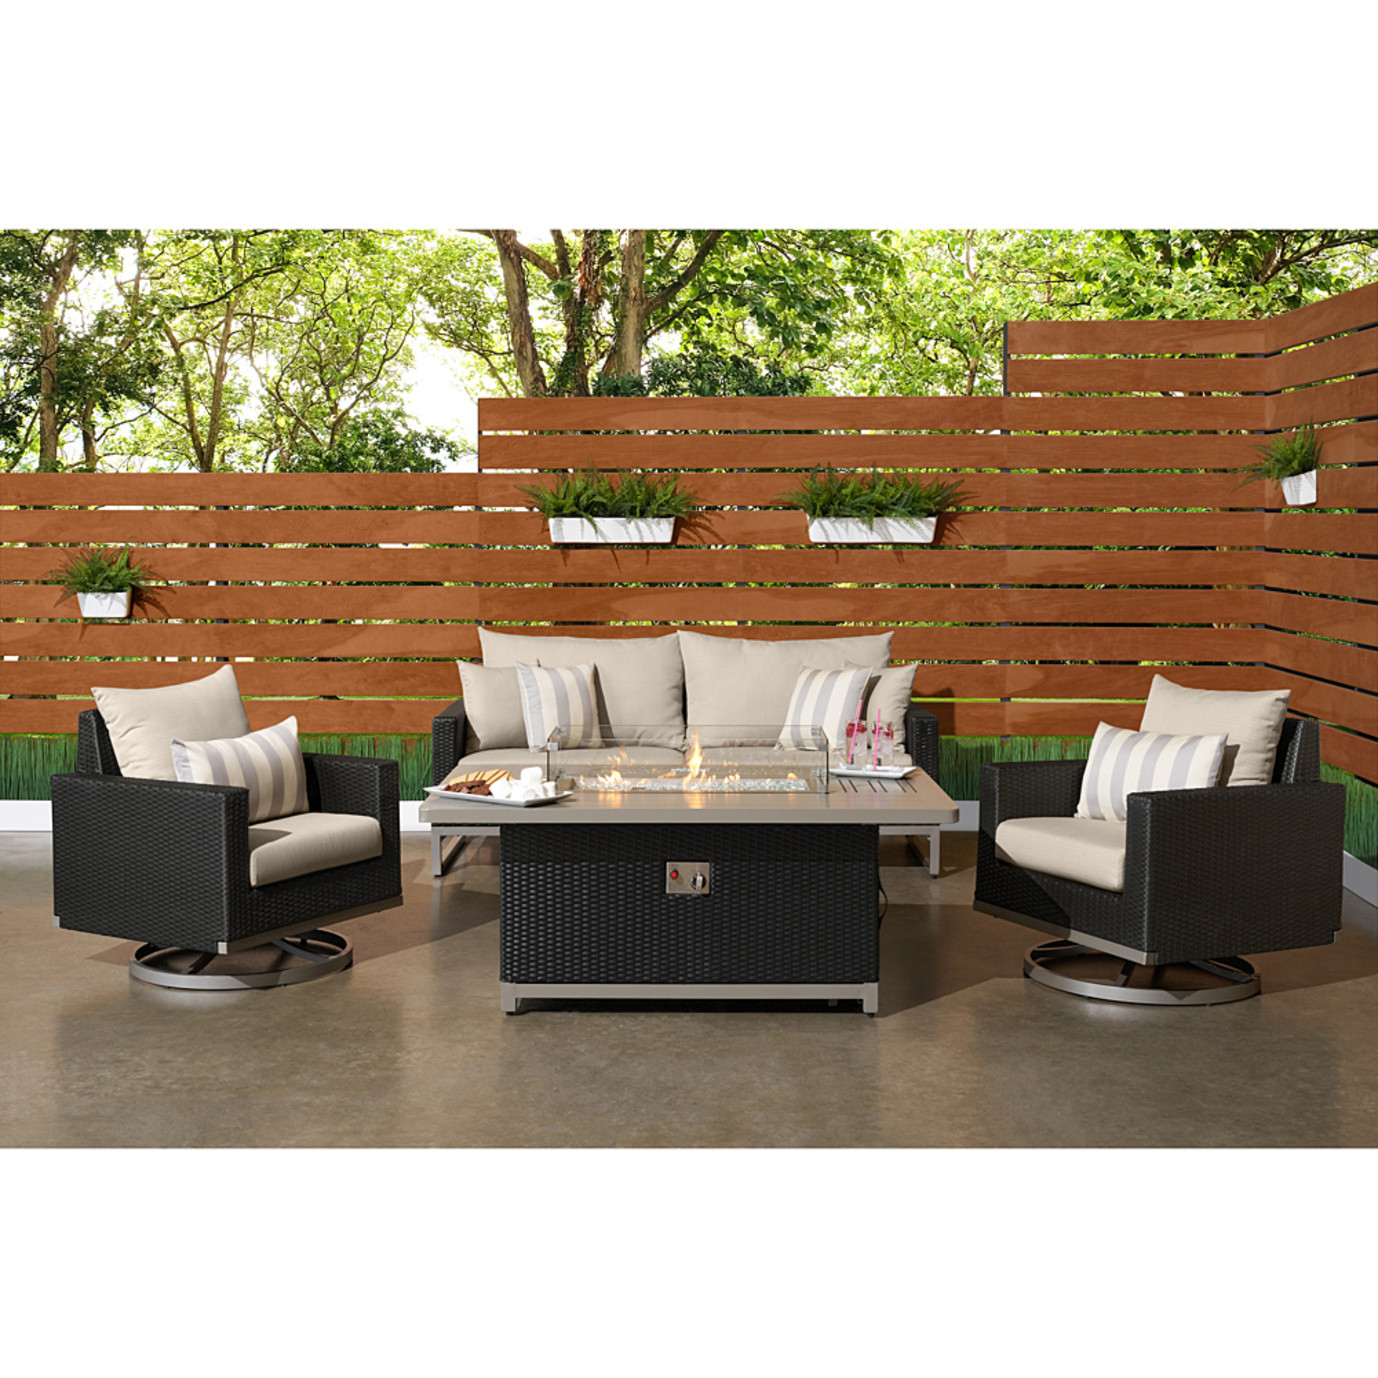 Milo™ Espresso 4 Piece Motion Fire Set - Slate Gray